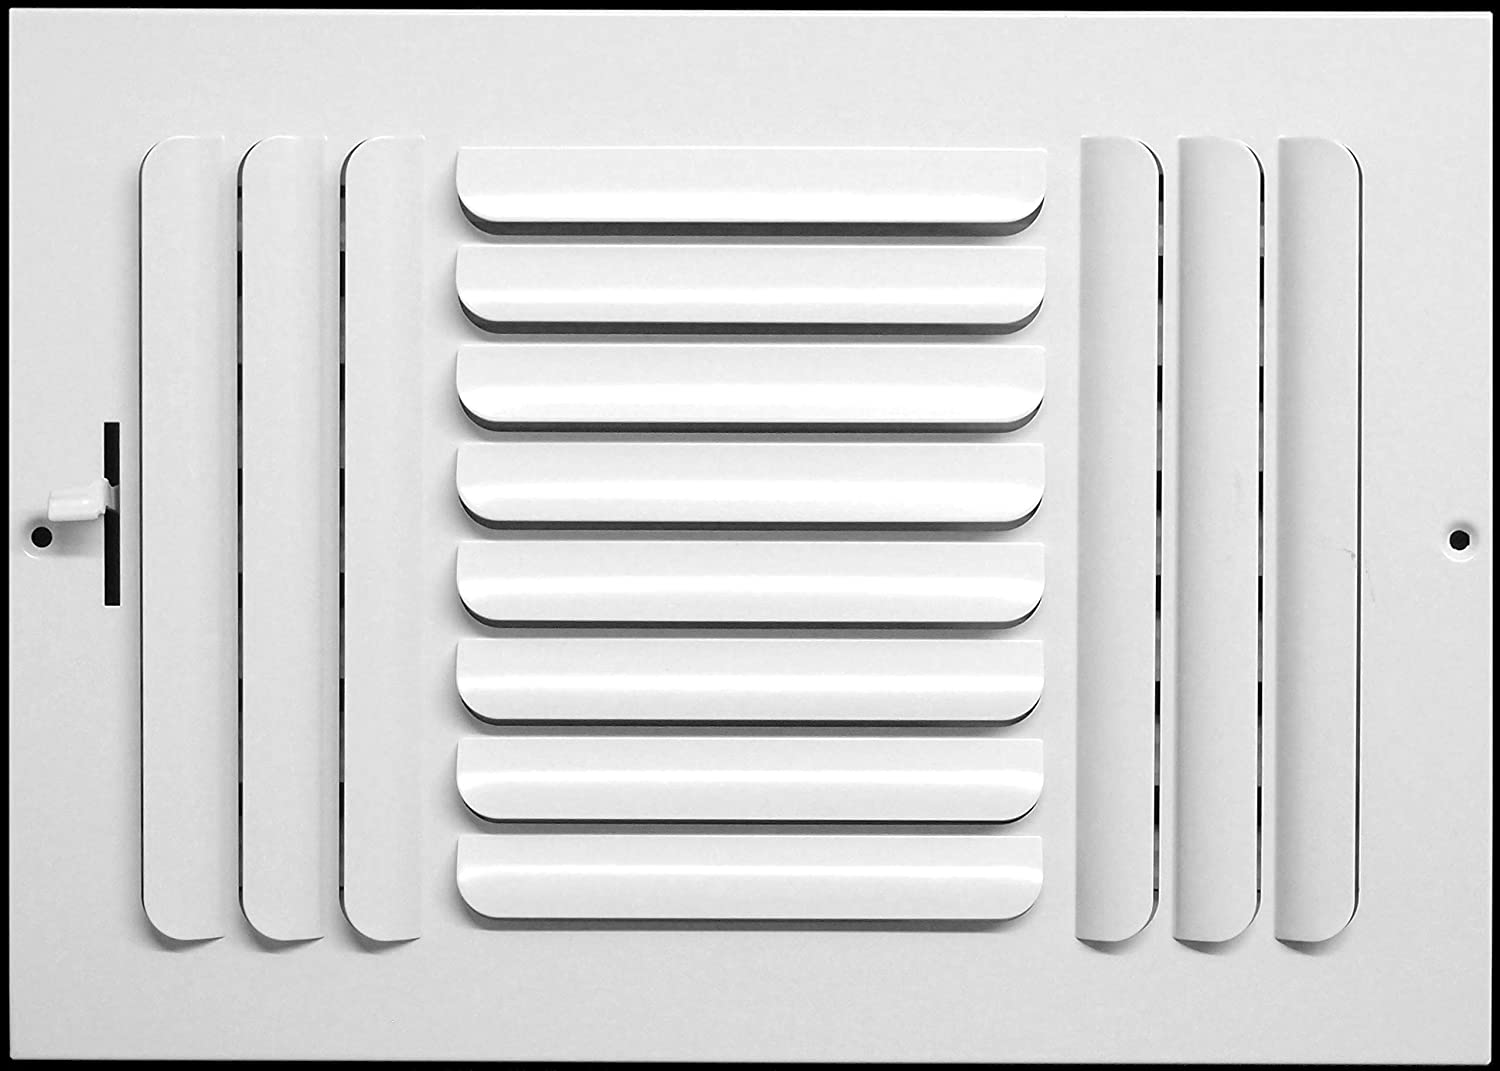 """12""""w x 6""""h 3-Way Fixed Curved Blade AIR Supply Diffuser - Vent Duct Cover - Grille Register - Sidewall or Ceiling - High Airflow - White"""